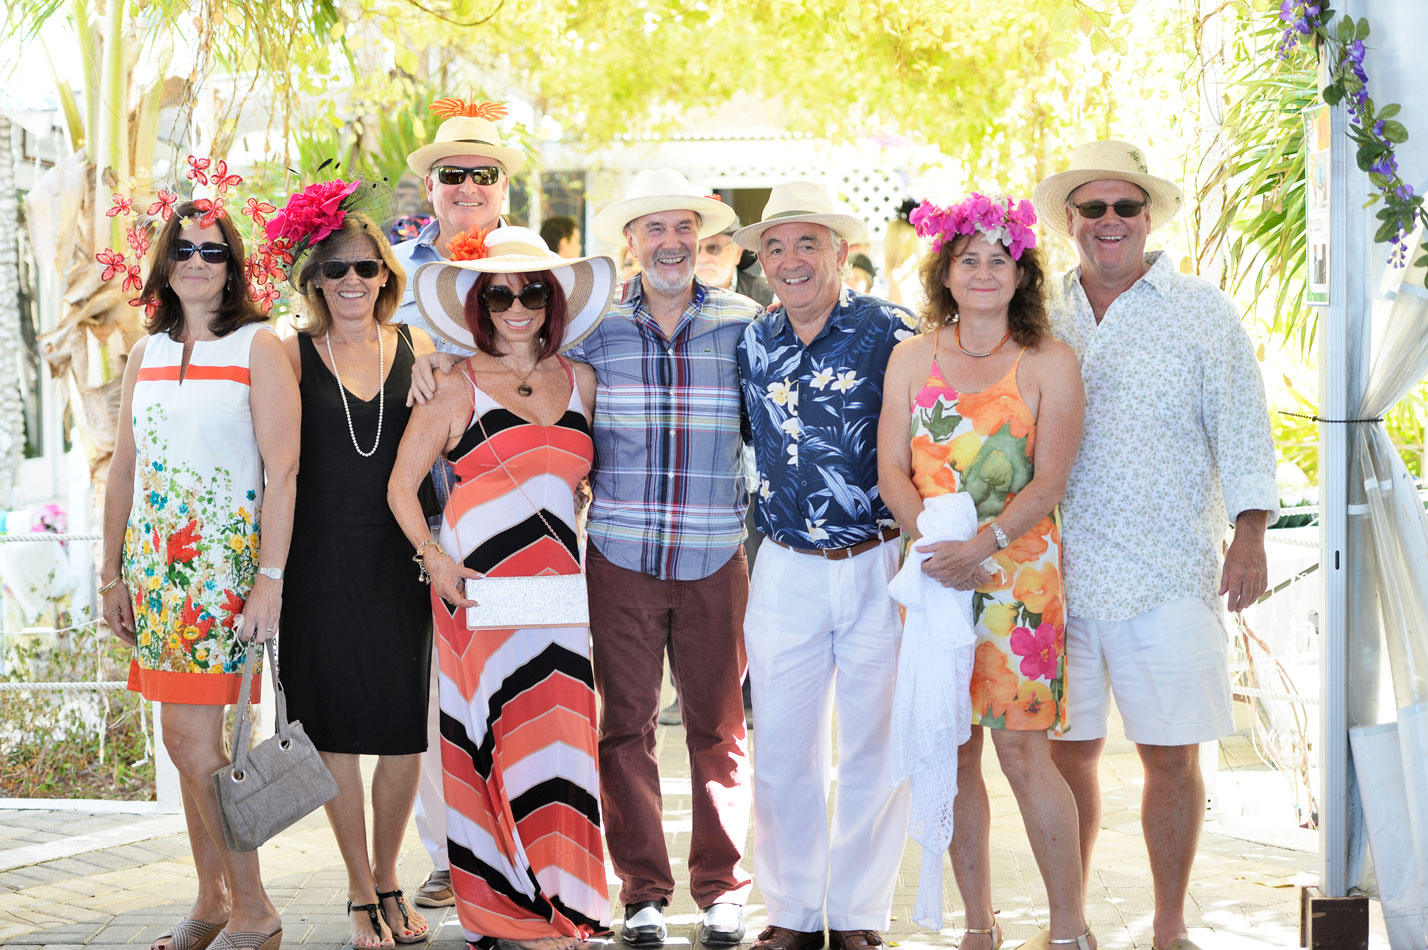 'fanta-sea' Is Theme For Hatitude Brunch photo